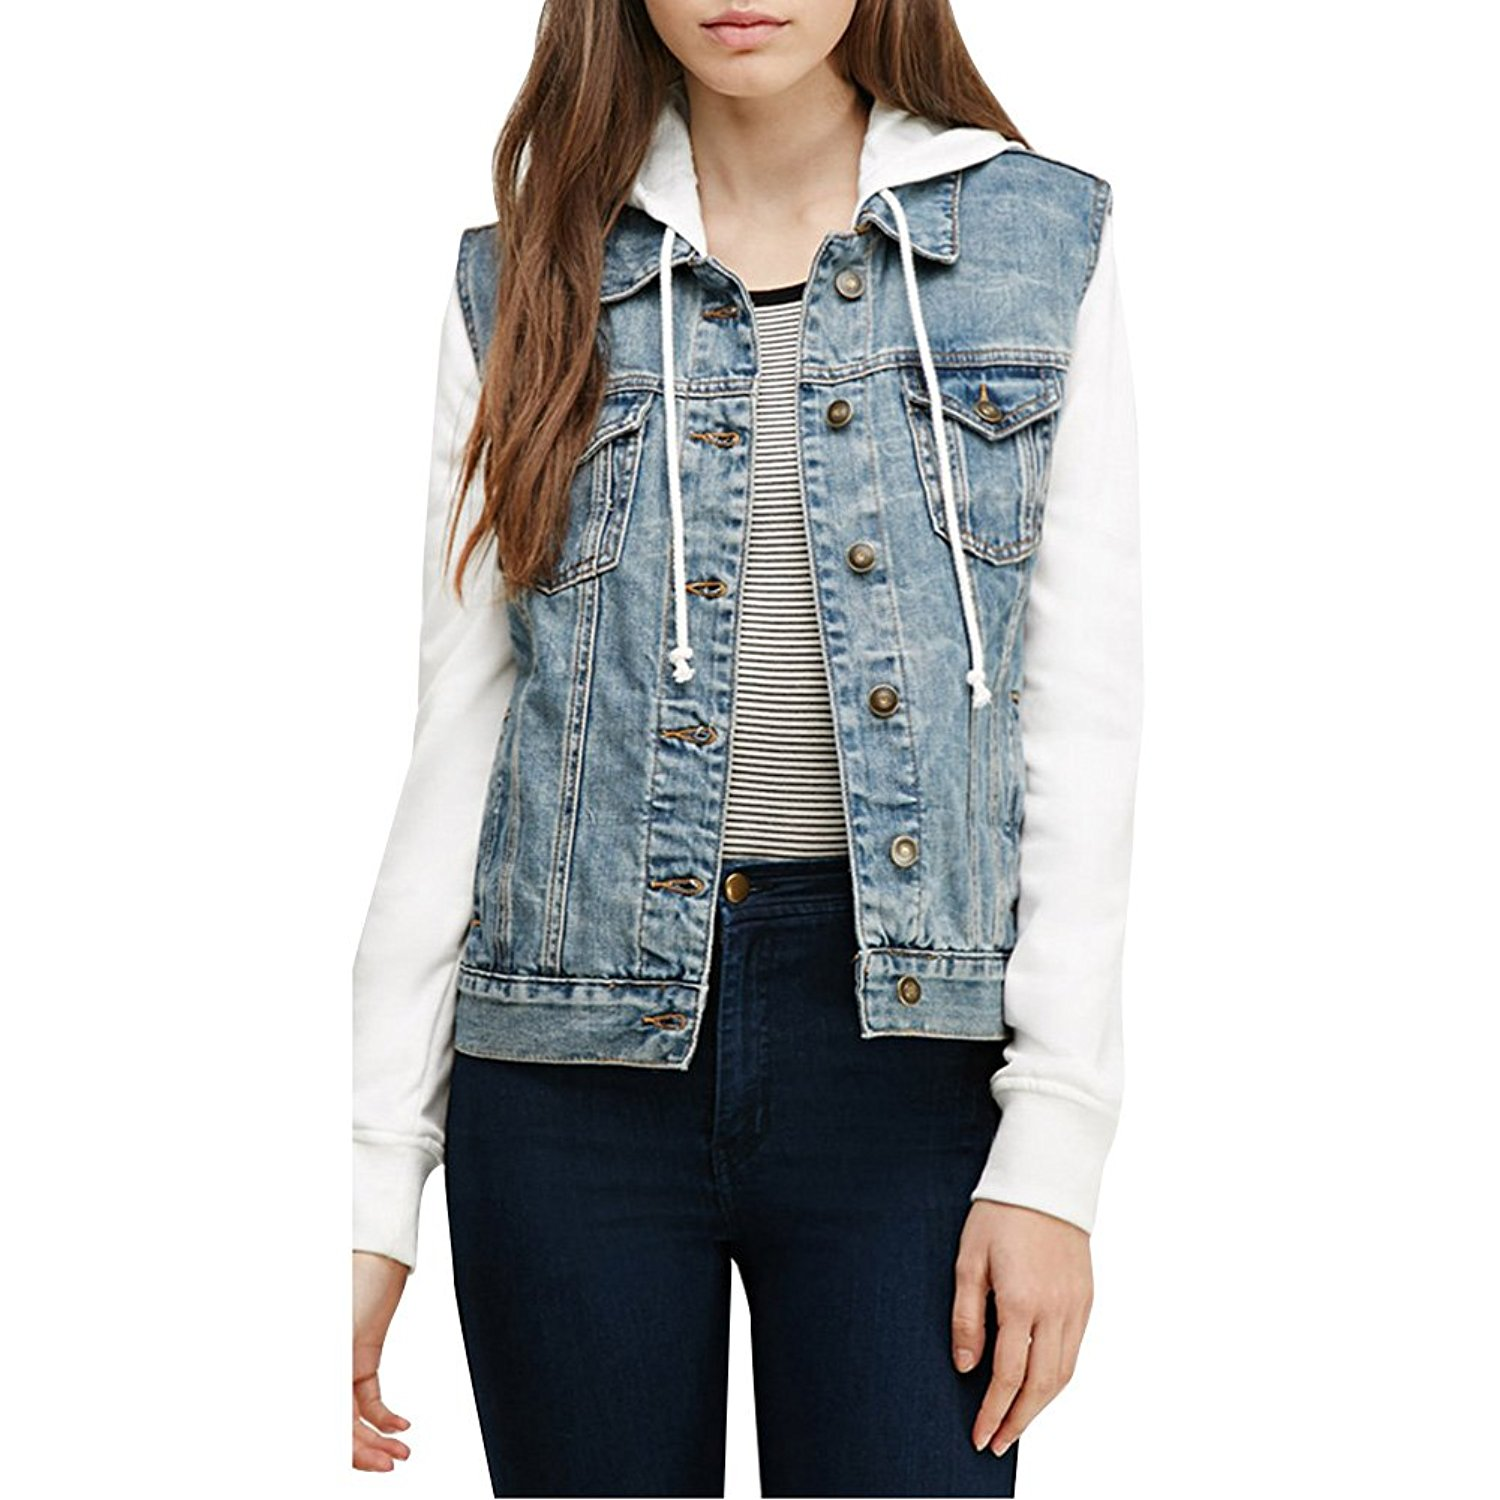 Womens BF Boyfriend Splice Denim Jacket with Hood Coat Baseball Hoodie at Amazon Women's Clothing store: